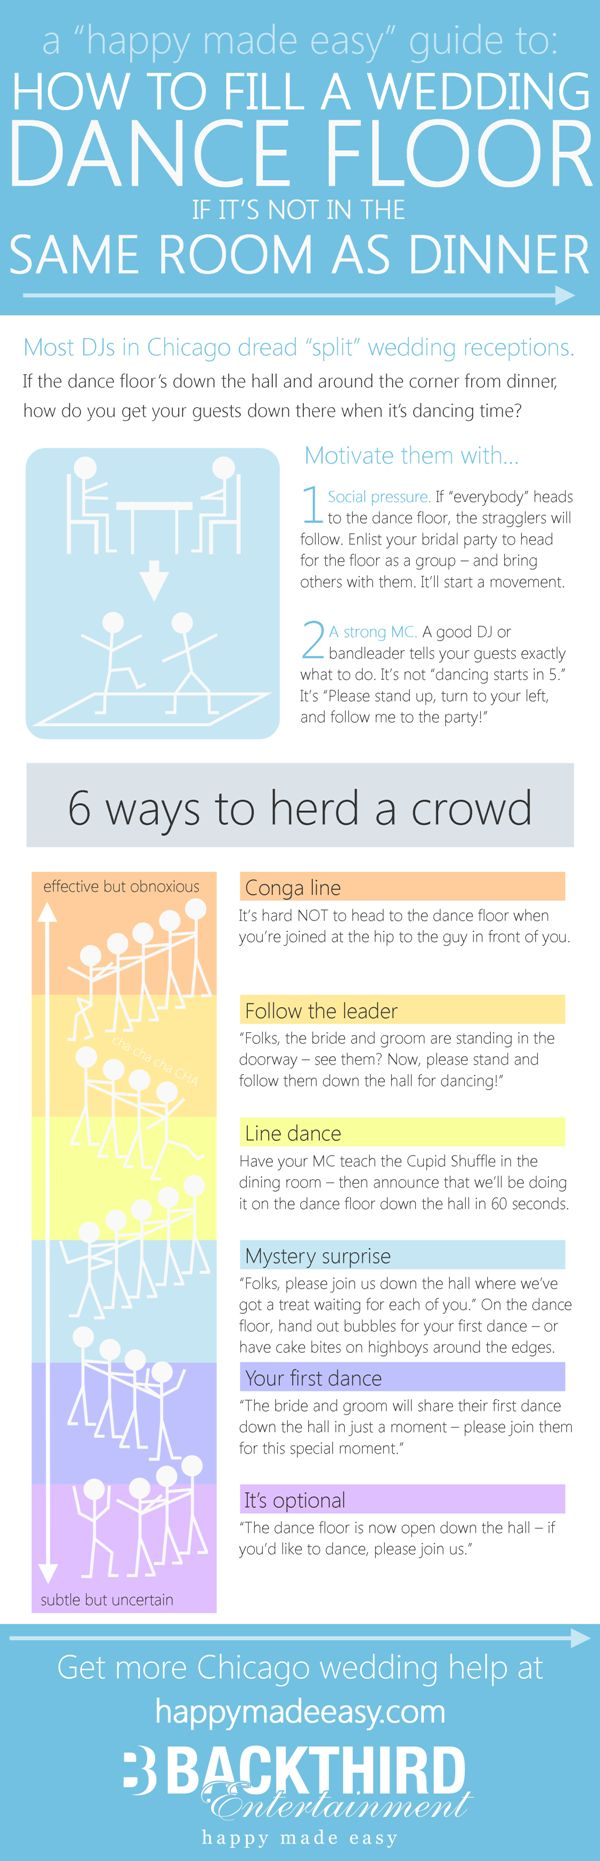 How do you fill your dance floor when it's separate from the dining room? Click through to see the full-size infographic, or check DJ availability for your event at http://backthird.com/entertainment/hme_happymadeeasy.php #happymadeeasy